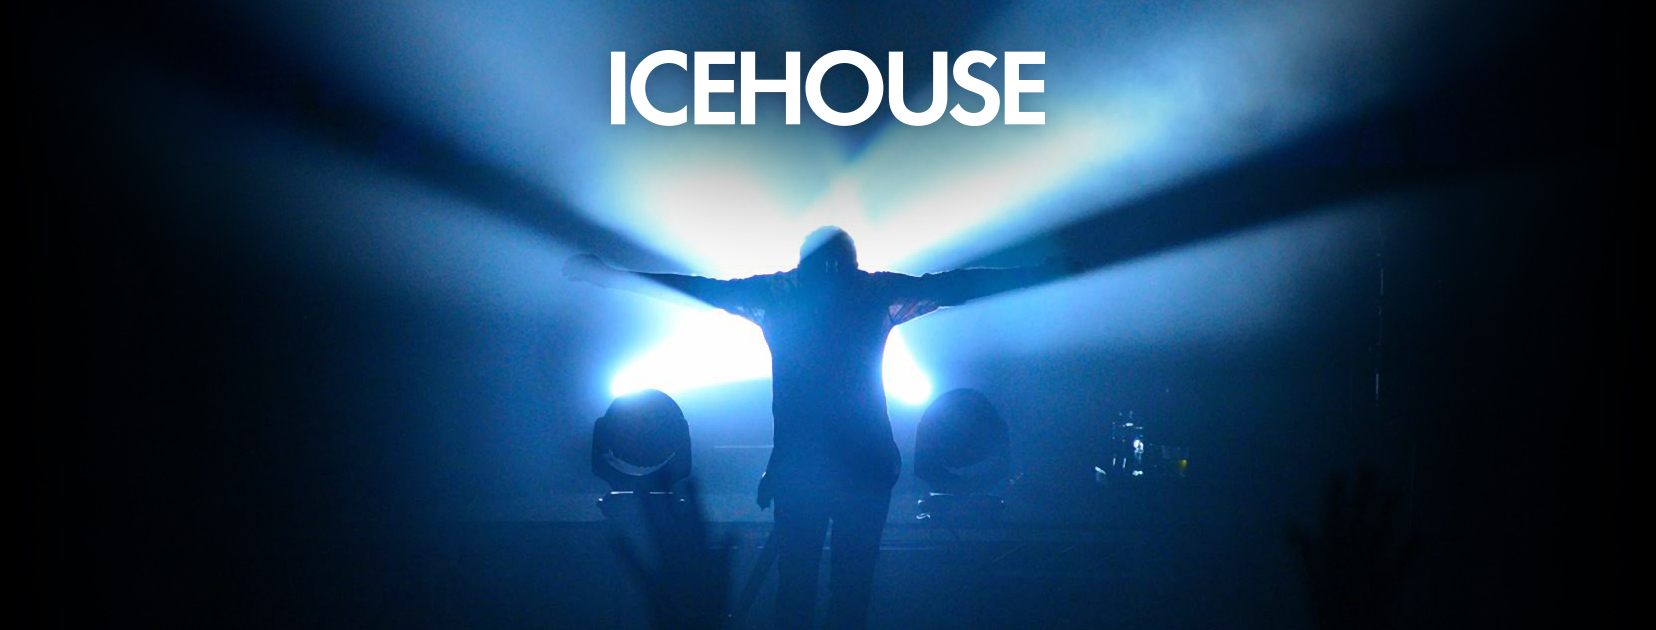 Icehouse Image